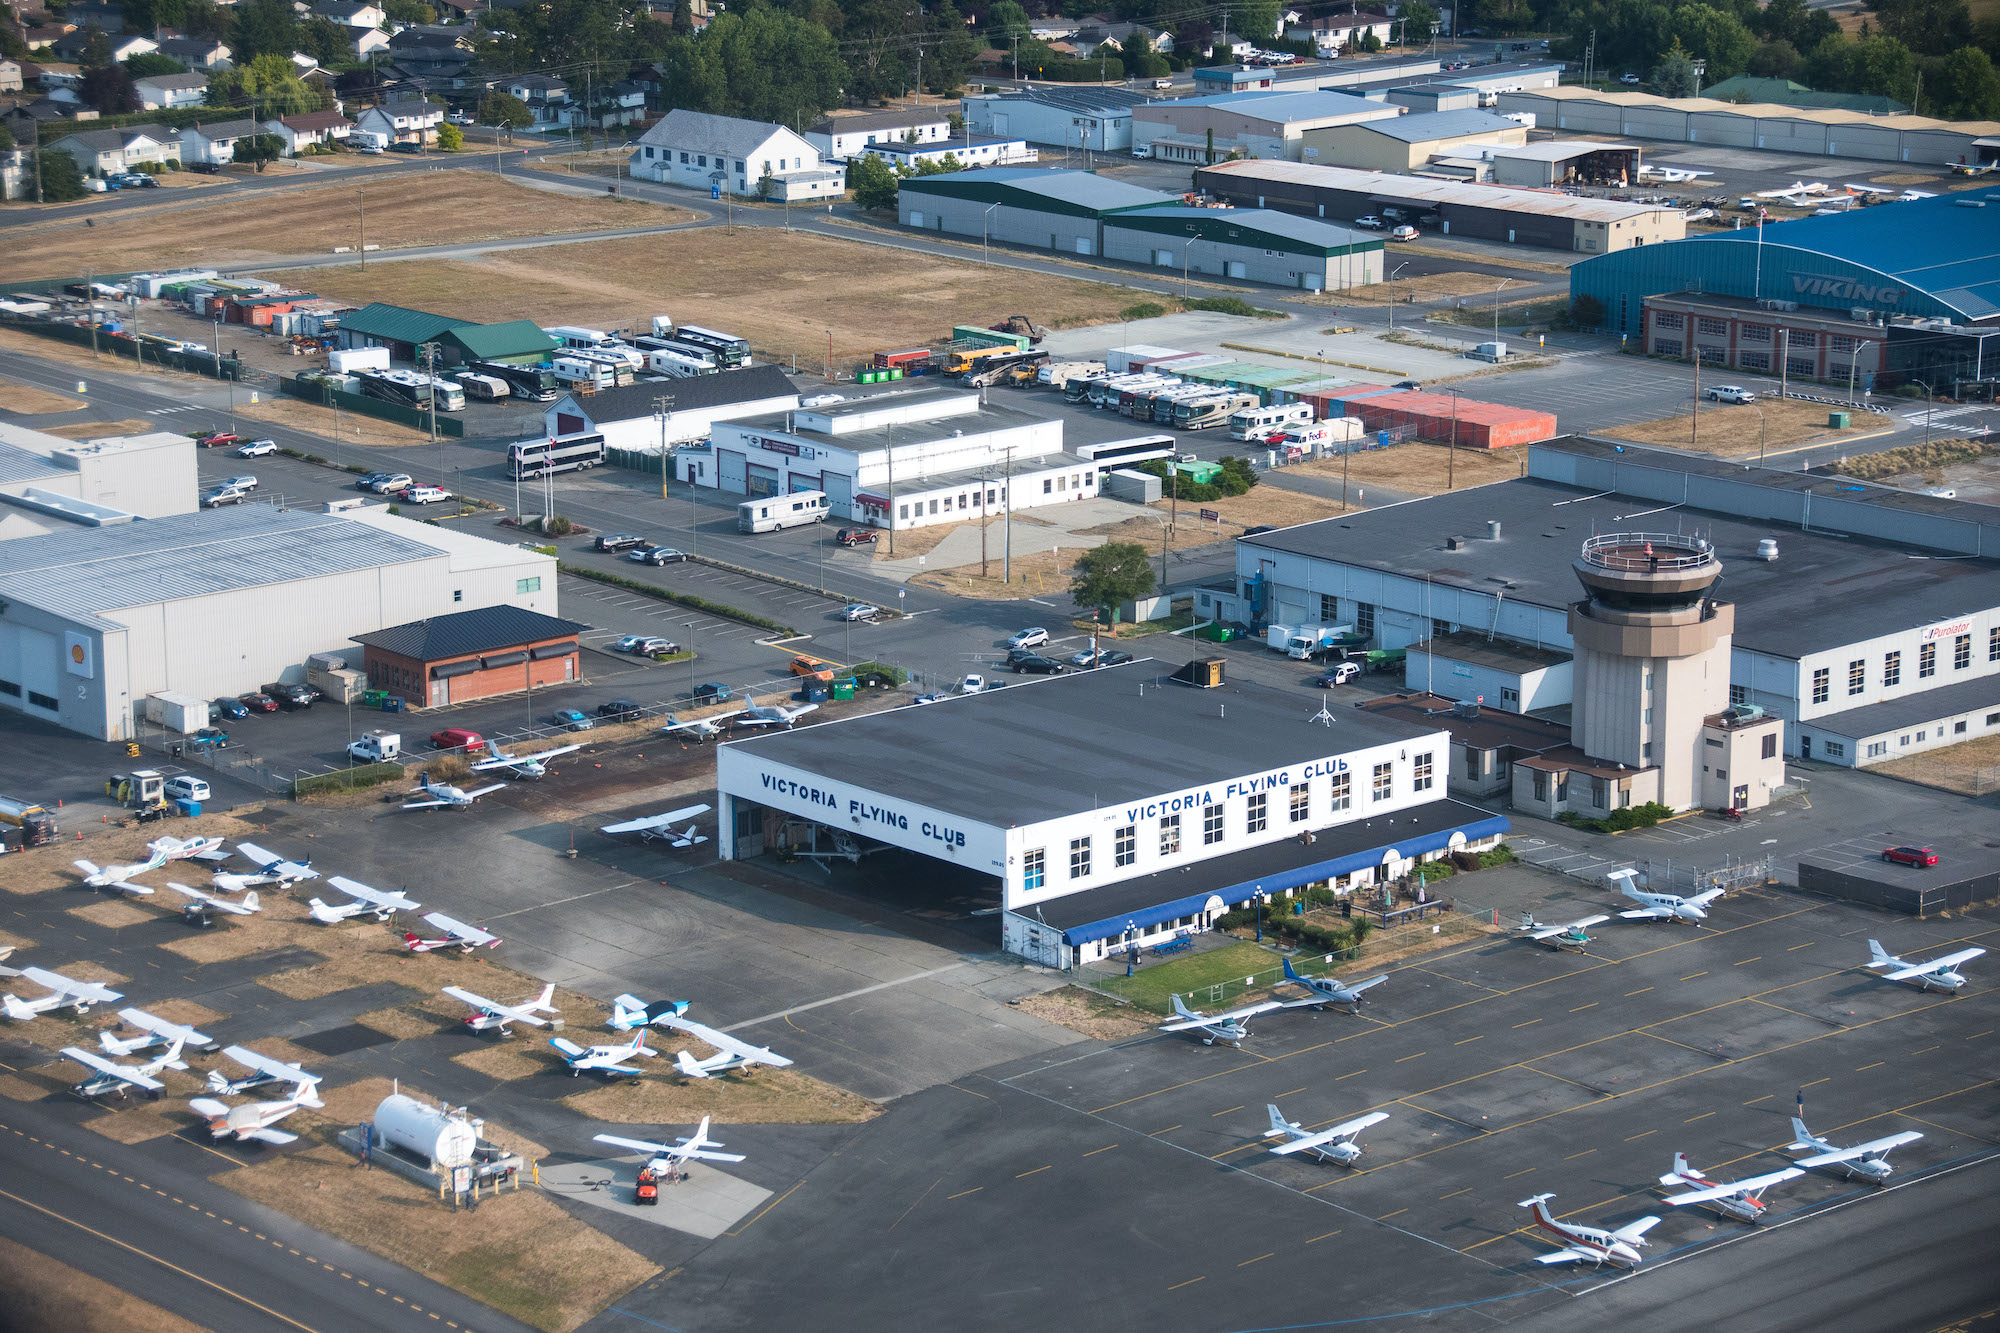 As air travel returns, the Victoria Flying Club looks to take off